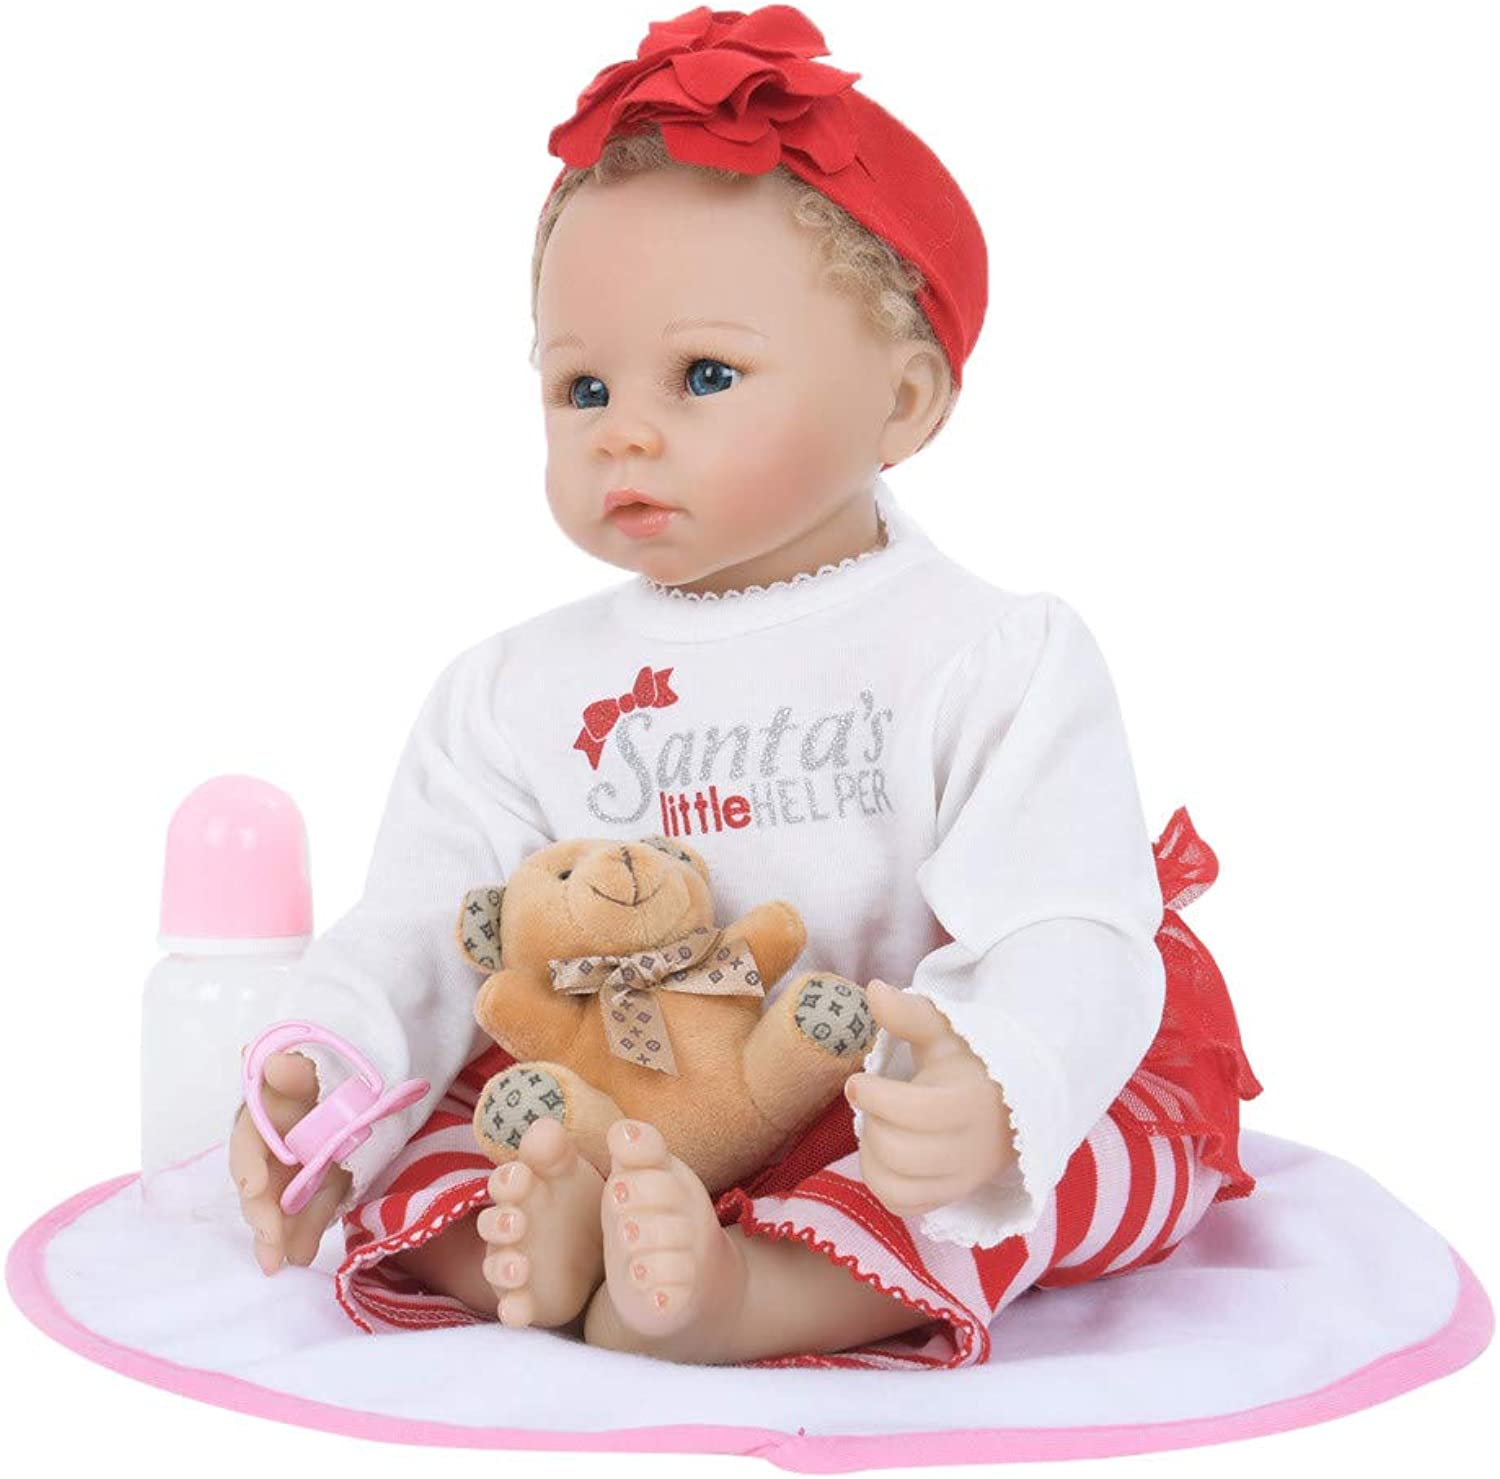 Wokee Reborn Baby Doll Soft Simulation Silicone Vinyl 22inch Realistic Xmas Present Santa's Little Helper Educational Dolls